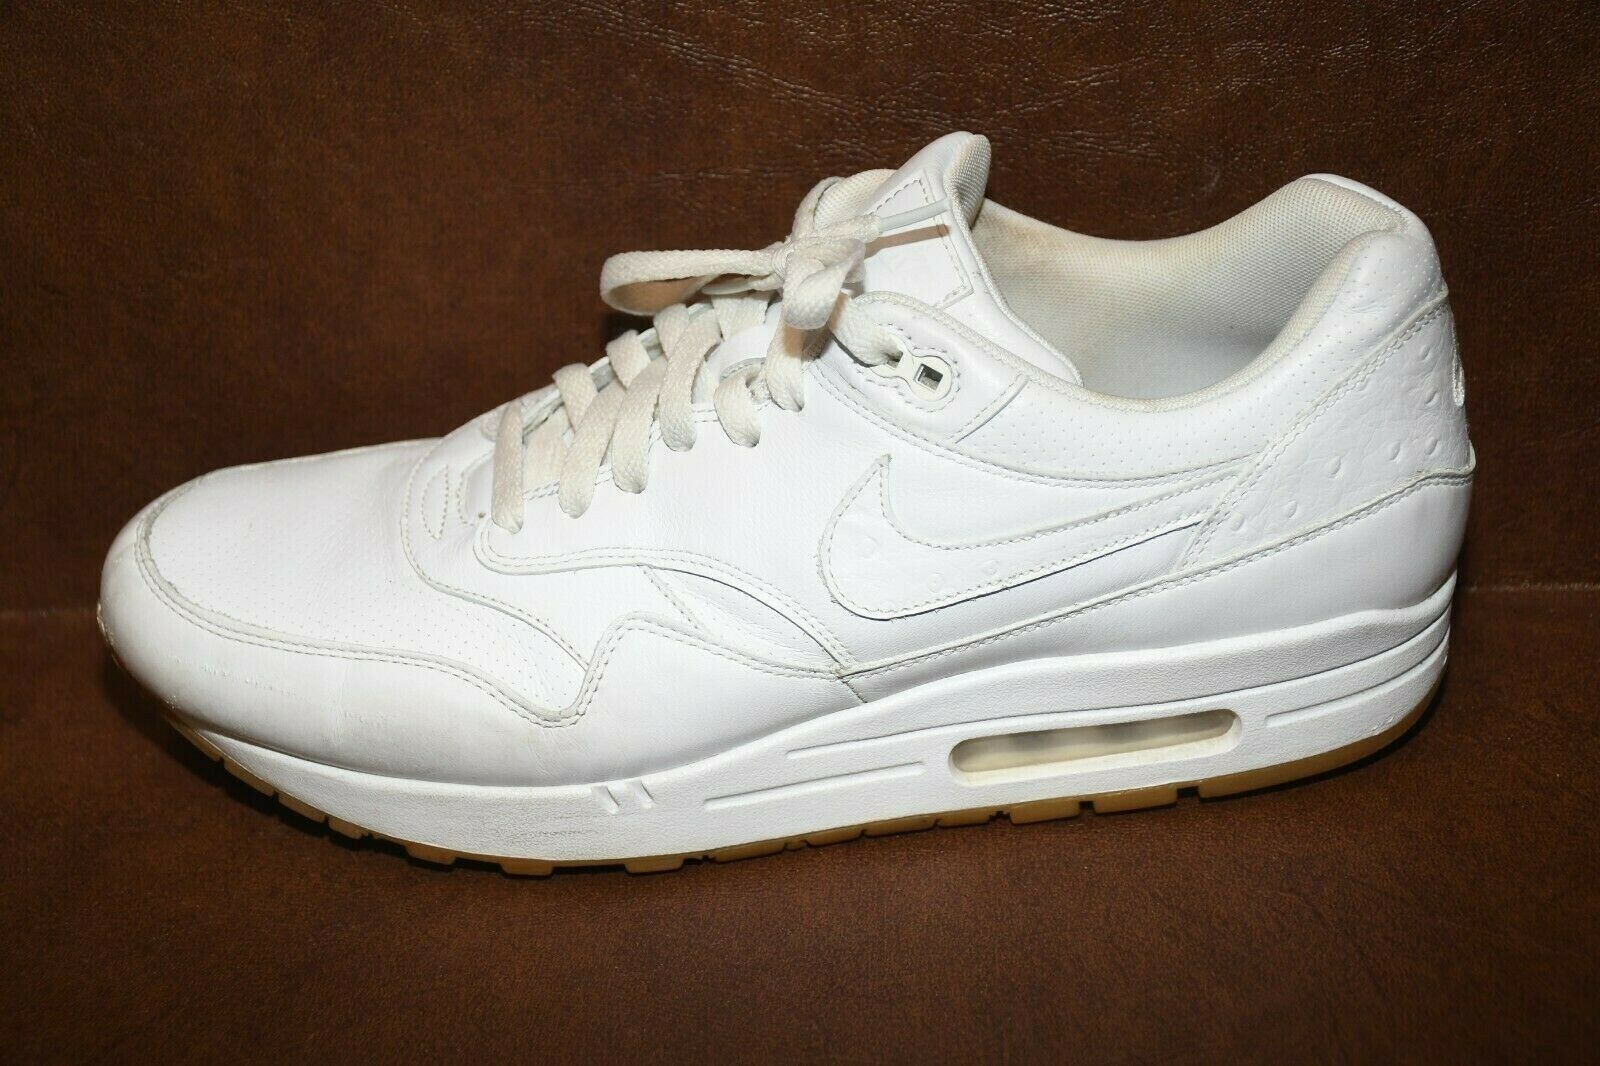 NIKE AIR MAX 1 LEATHER PA WHITE GUM OSTRICH PACK 705007 111 CLEAN! SIZE 13M